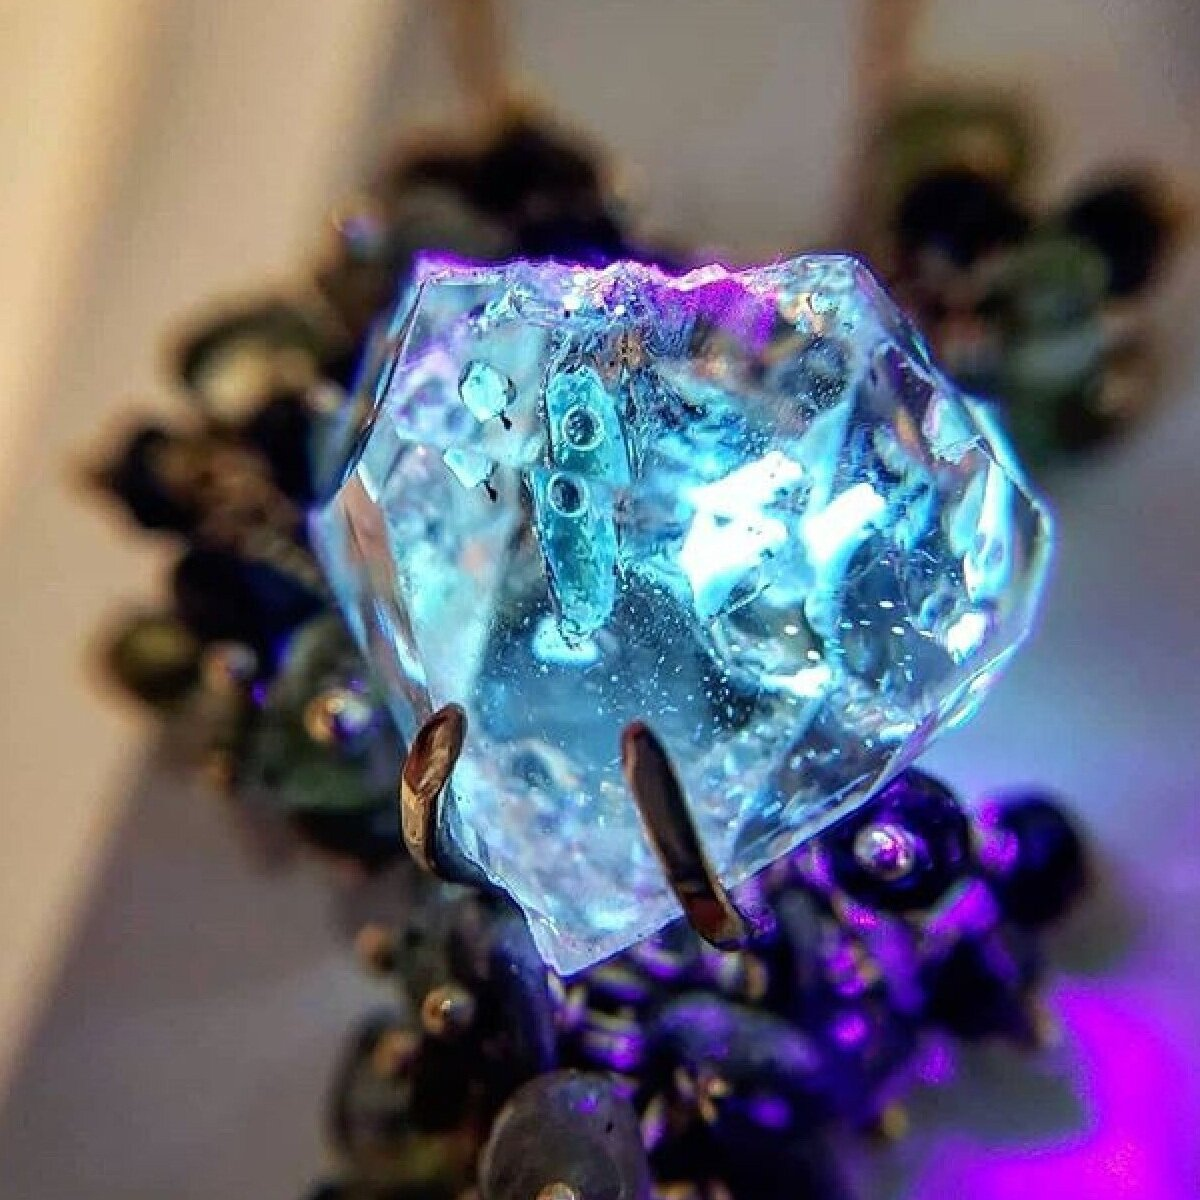 Detail of the golden enhydro quartz crystal in Michelle Pajak-Reynolds's Voyageuse Collection Desma pendant fluorescing under UV light. Photo courtesy: Benjamin Guttery/Third Coast Gems